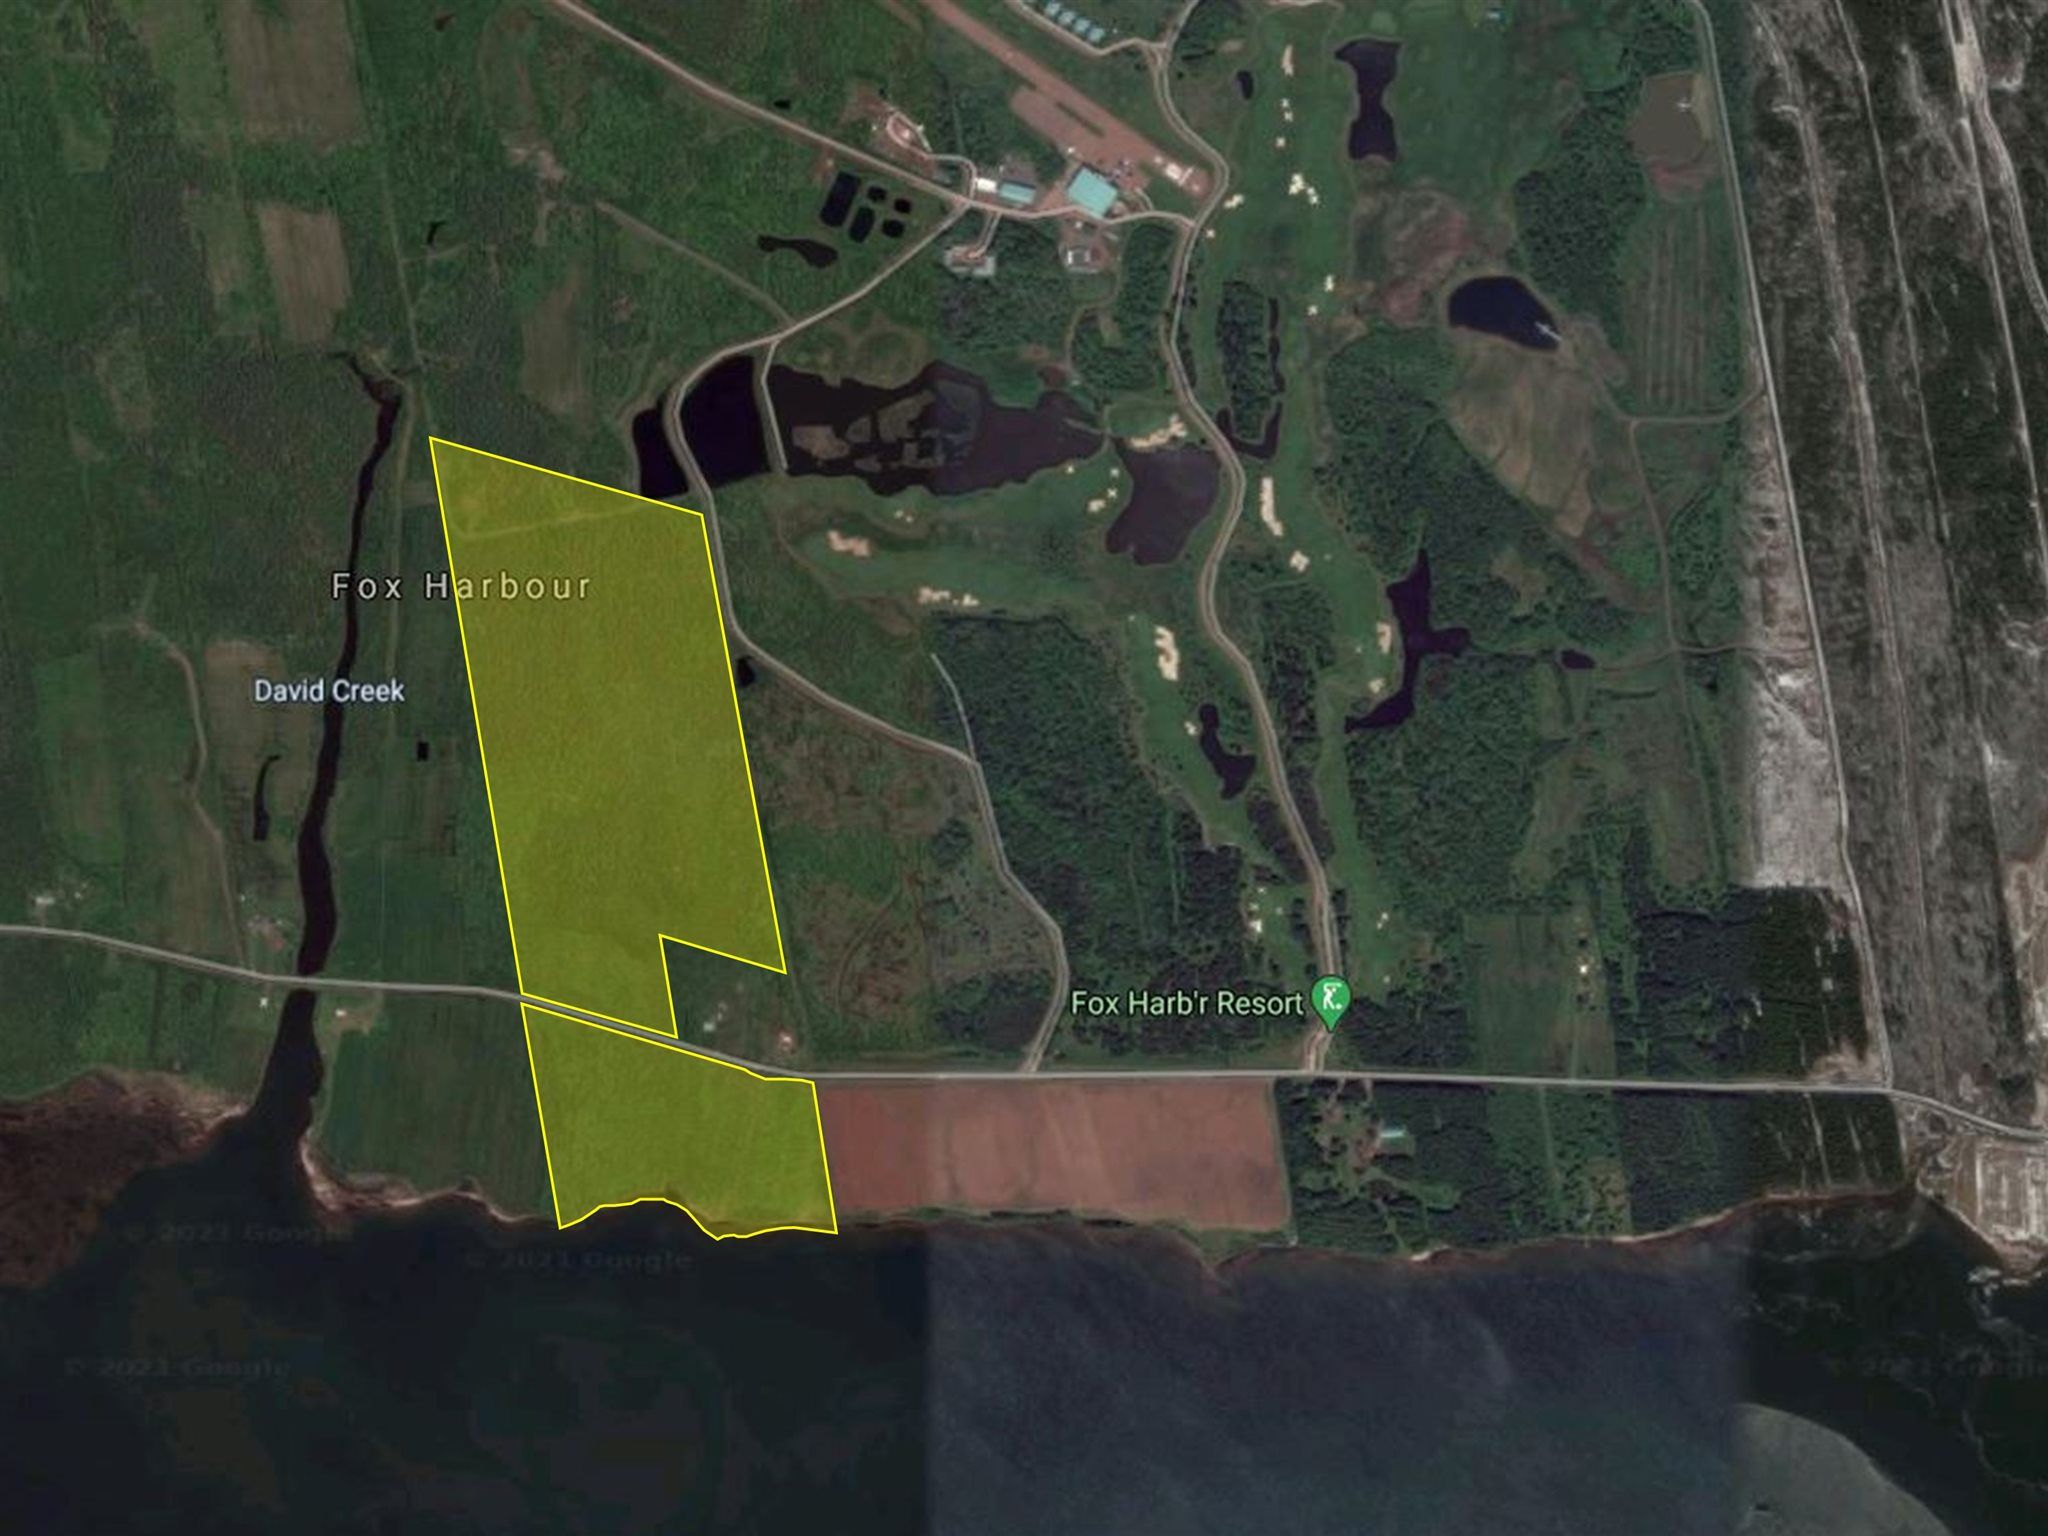 Main Photo: Land Fox Harbour Road in Fox Harbour: 103-Malagash, Wentworth Vacant Land for sale (Northern Region)  : MLS®# 202105064